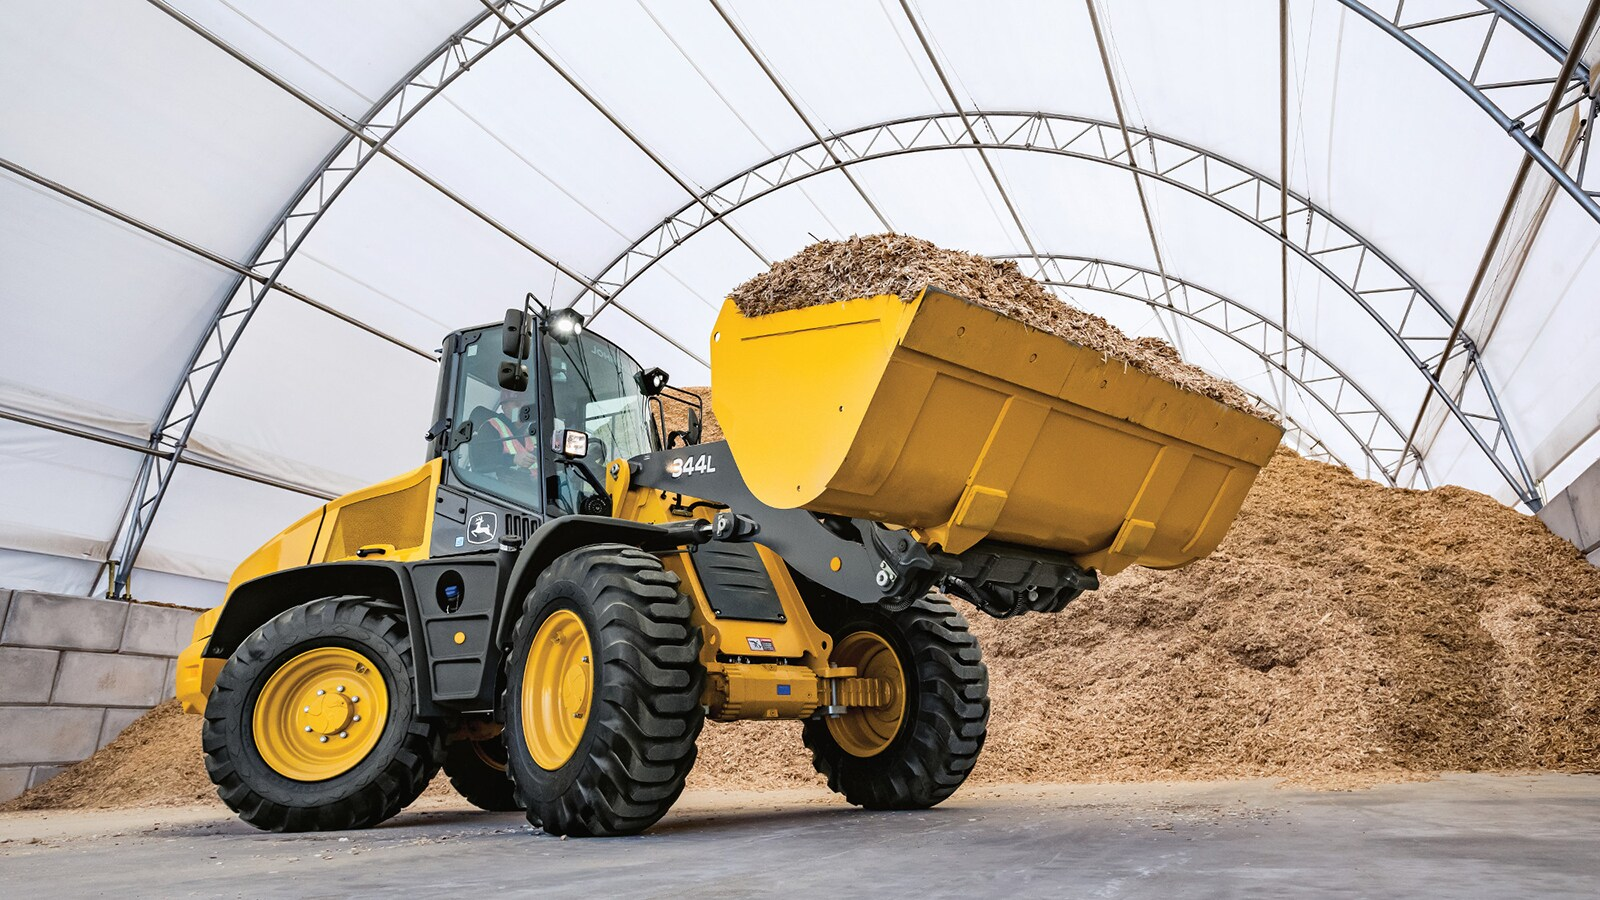 344L loader carries a bucket full of mulch inside a hoop building